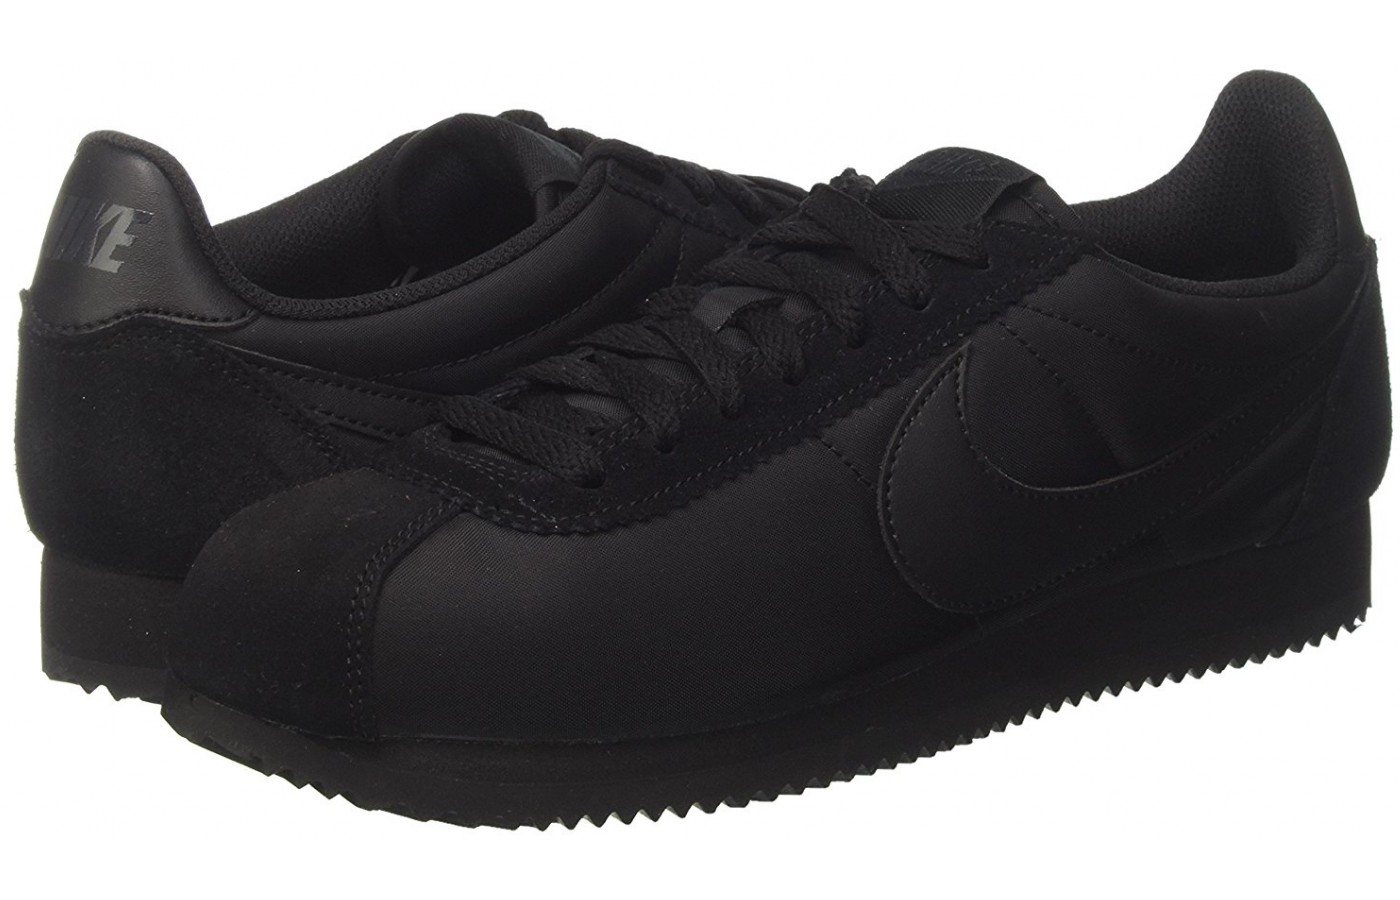 Pair of the Nike Cortez in Black